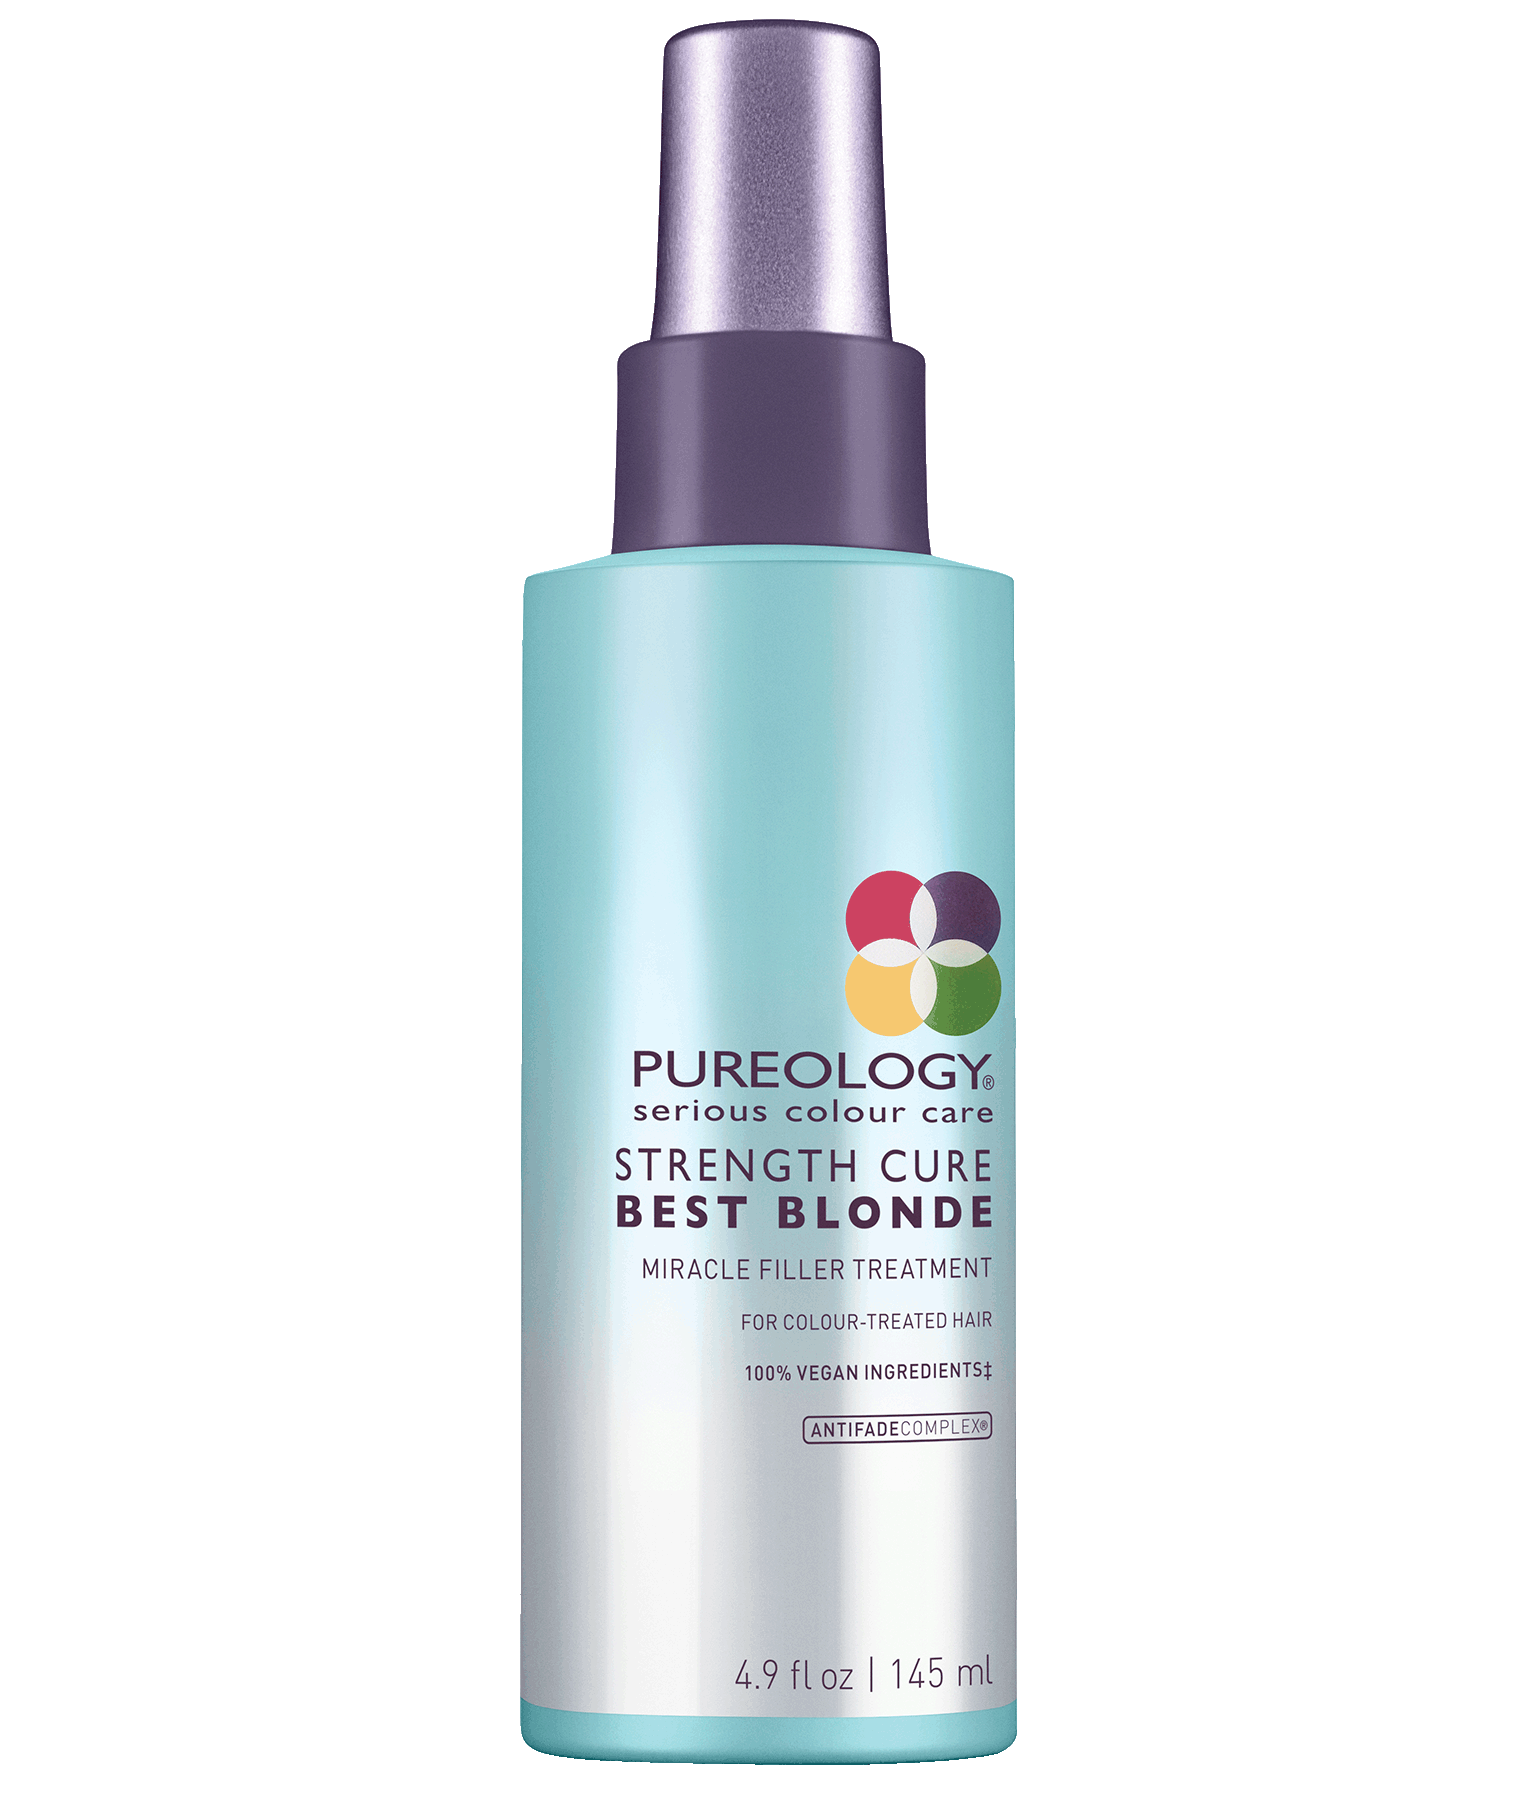 Strength Cure Best Blonde Miracle Filler For Blonde Hair Pureology